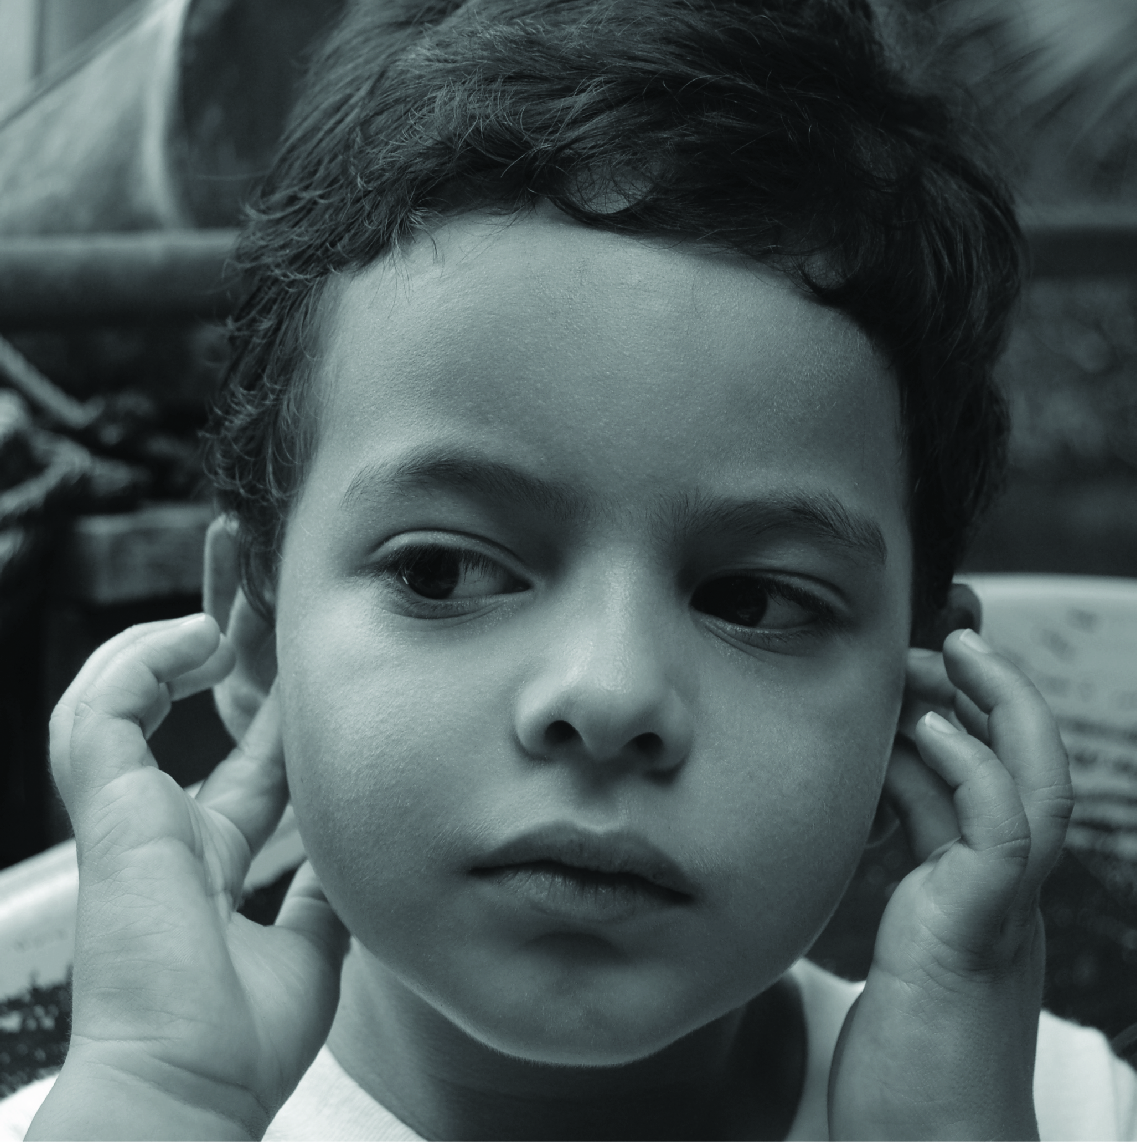 Autism & Sound Sensitivity: More Than Just a Mild Issue